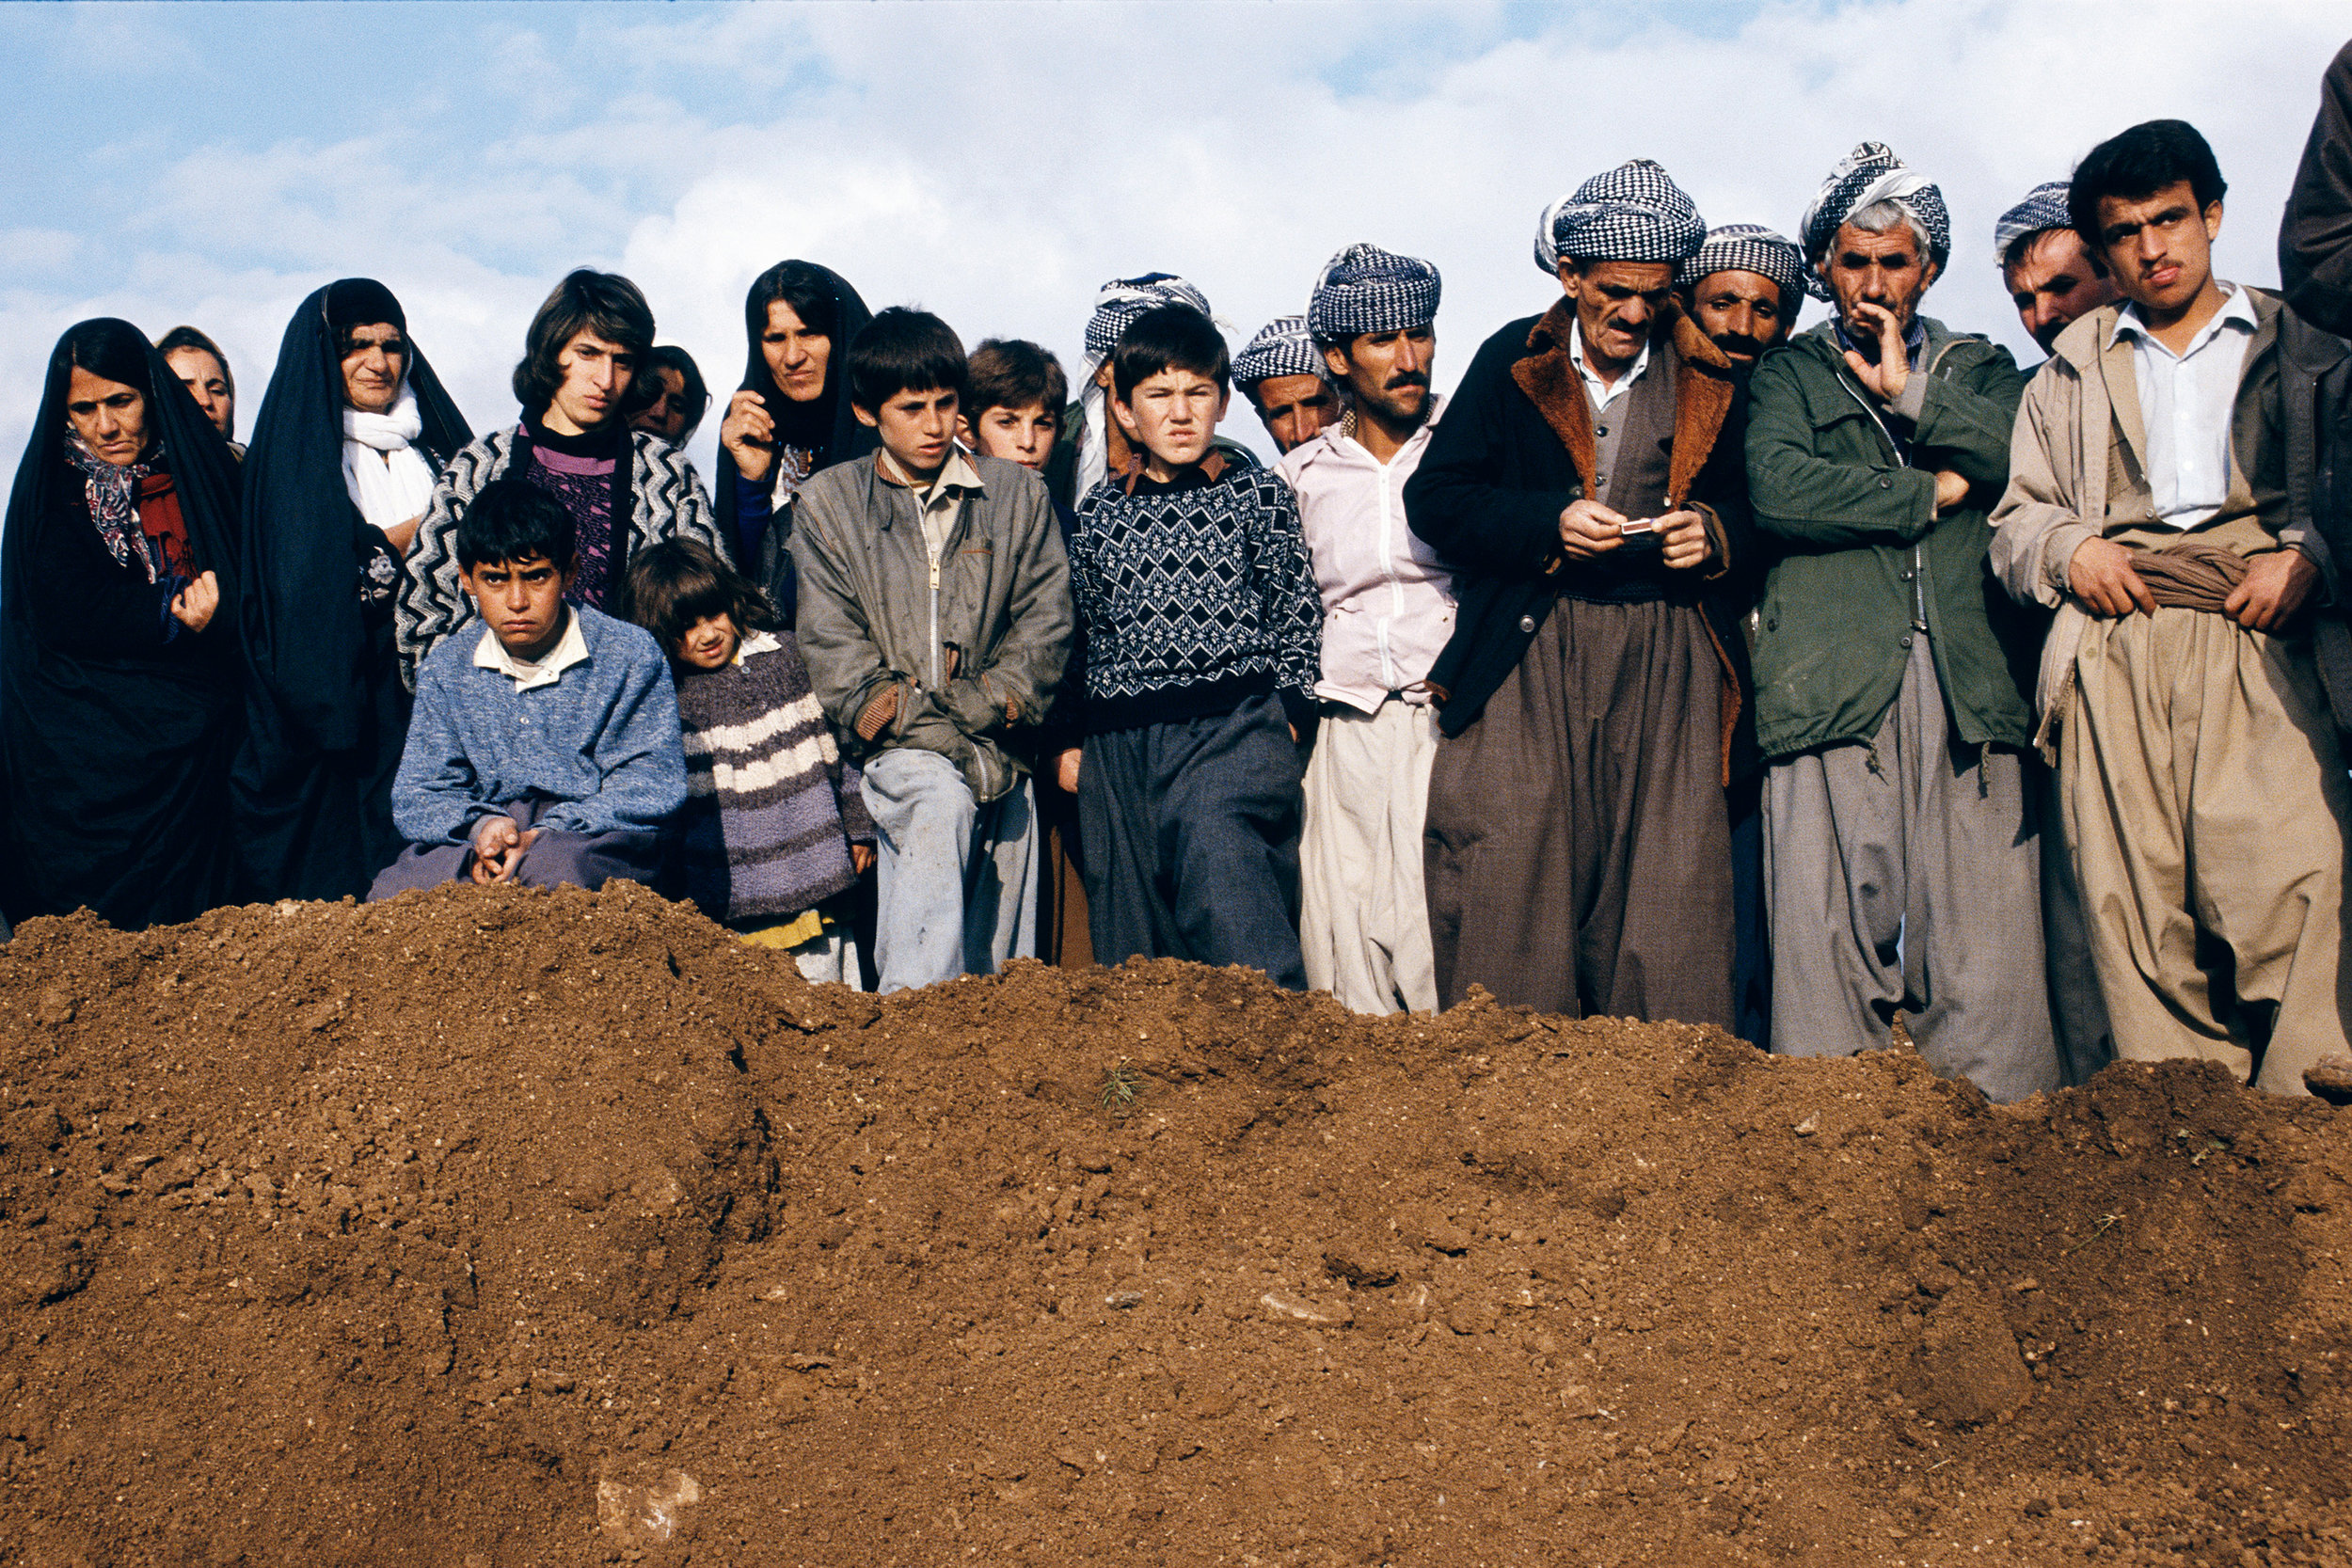 Villagers watch exhumation at a former Iraqi military headquarters outside Sulaymaniyah, Northern Iraq,  1991 © Susan Meiselas